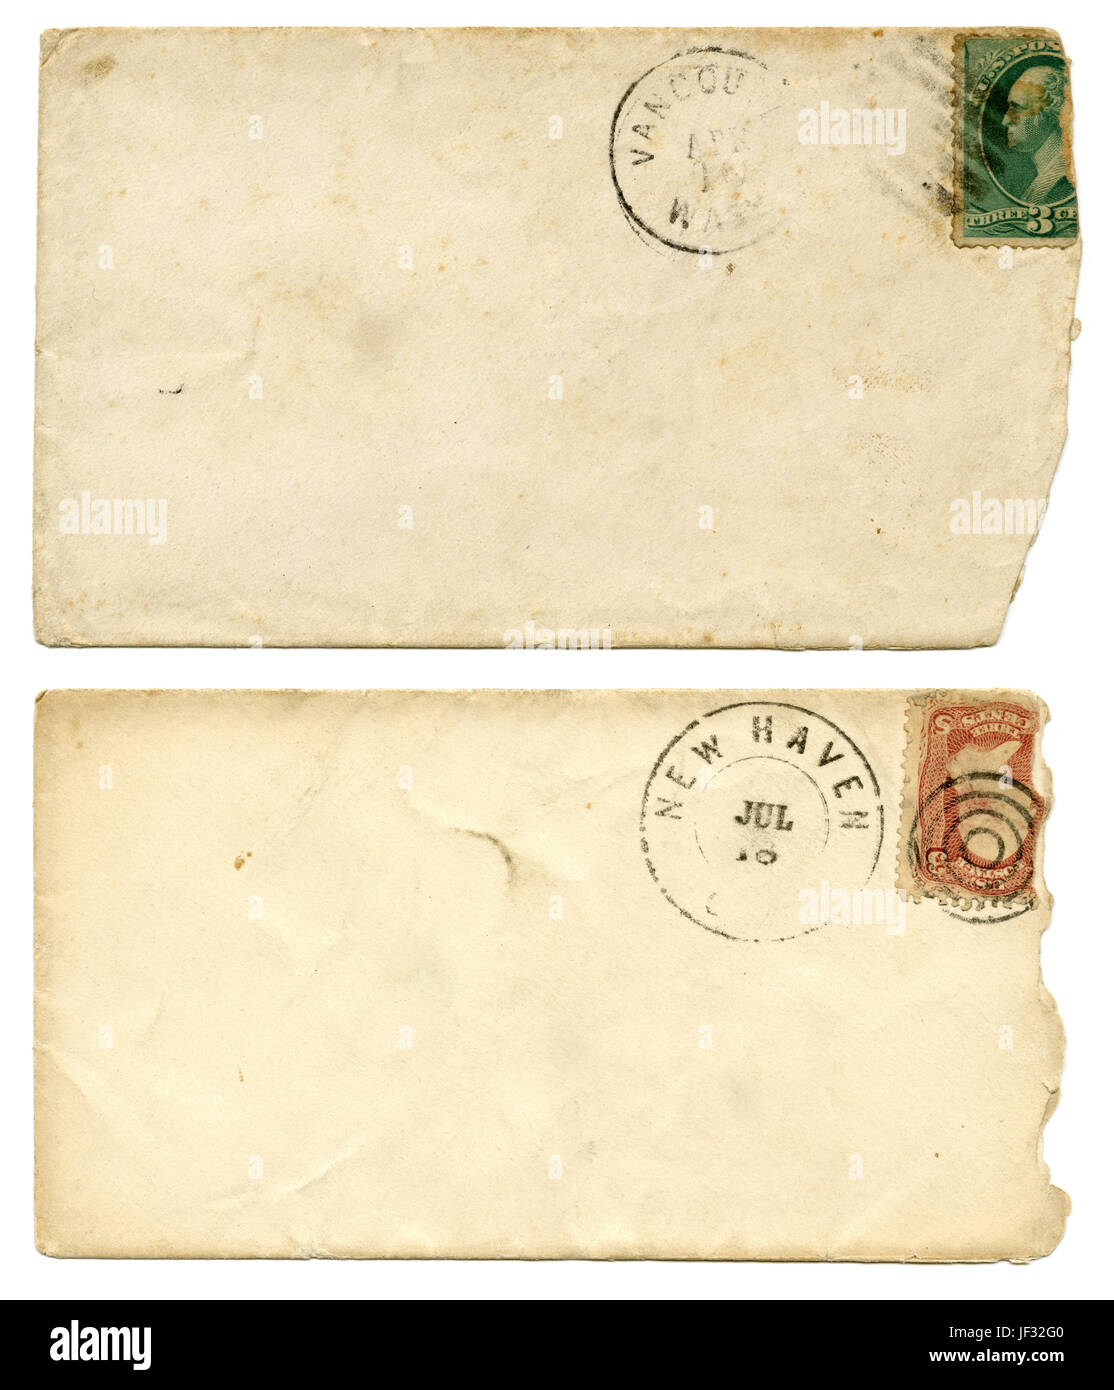 Pair of antique c1880 stamped and canceled envelopes. - Stock Image